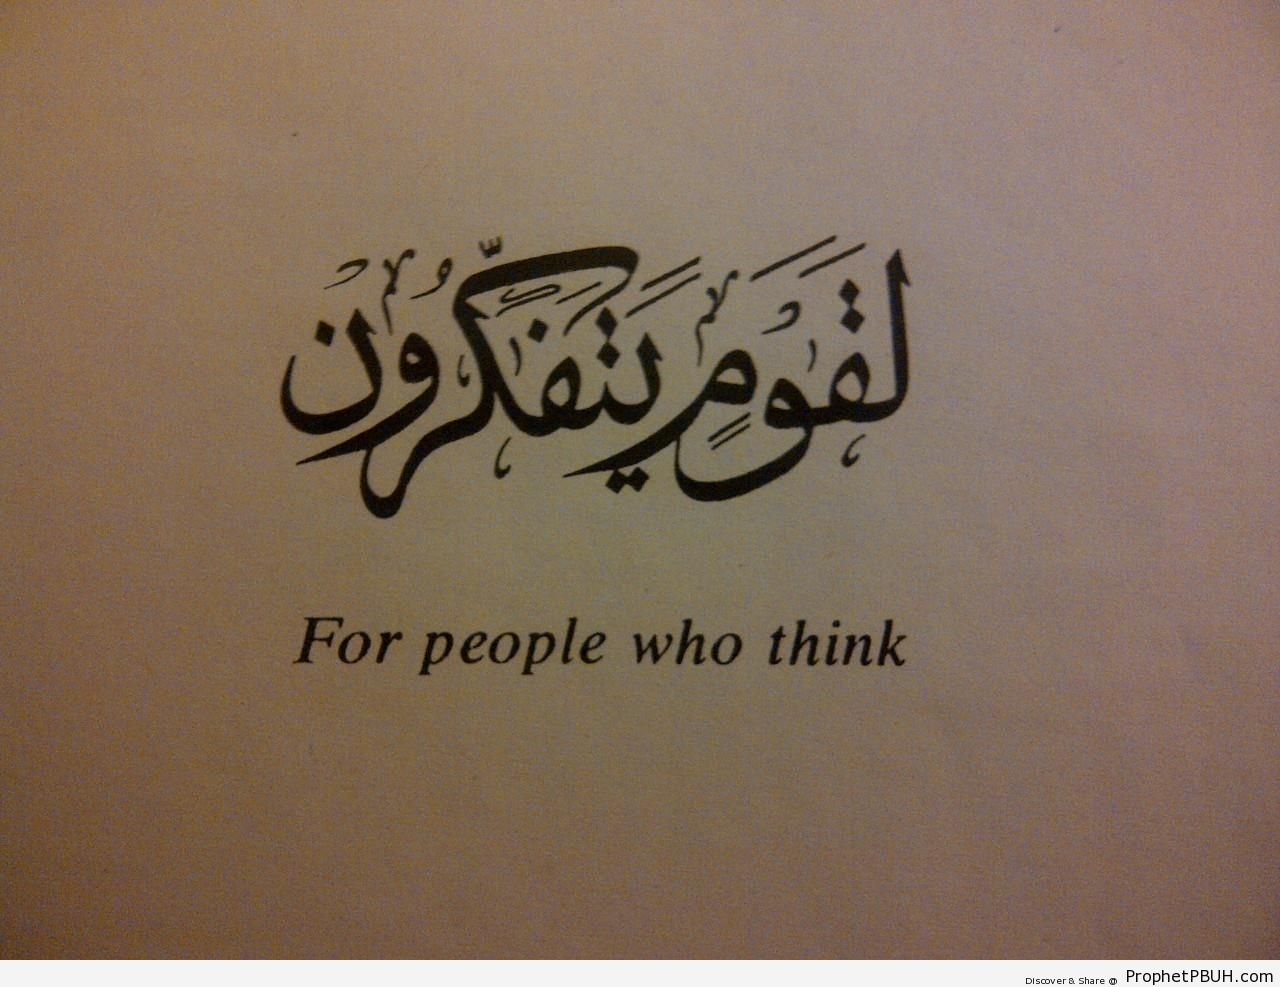 For People Who Think (Quran Calligraphy) - Islamic Calligraphy and Typography